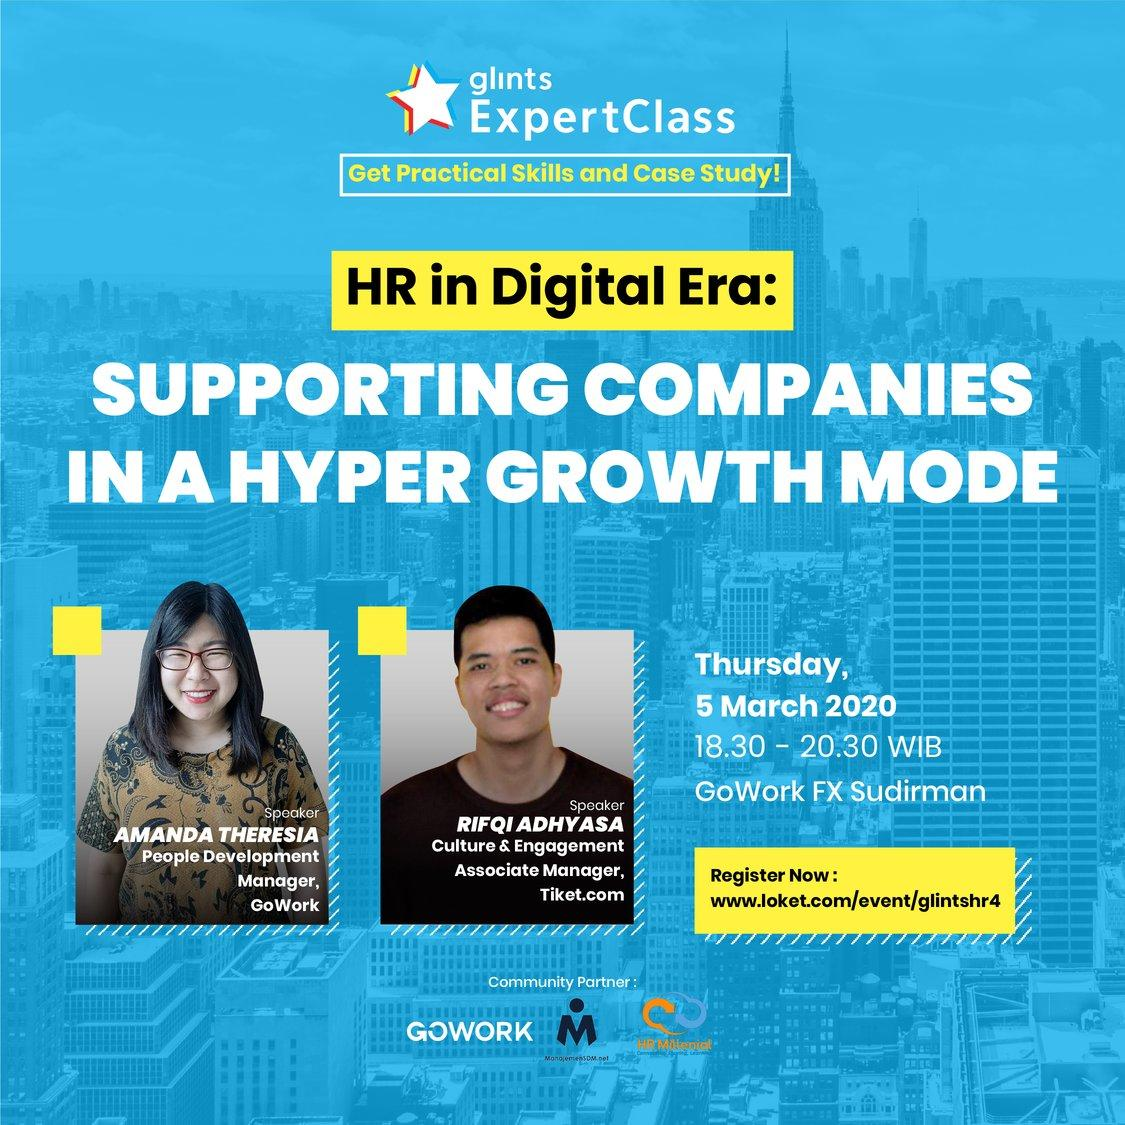 Glints Expert Class - HR in Digital Era : Supporting Companies In A Hyper Growth Mode